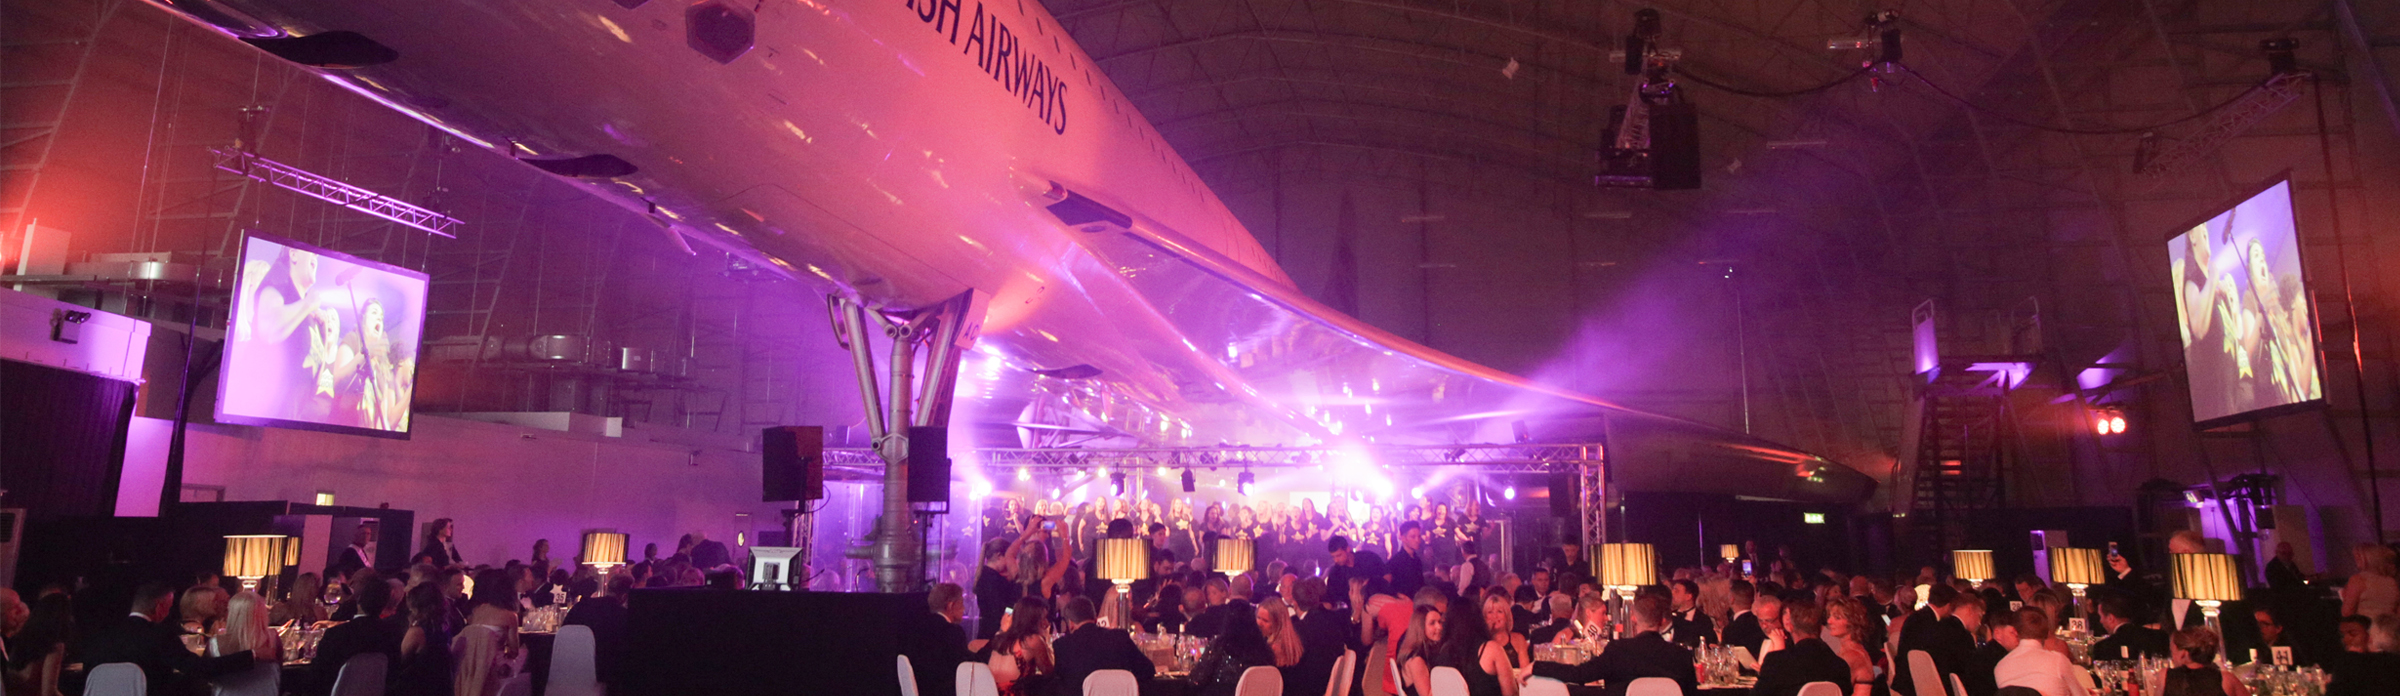 A dinner dance underneath the wings of Concorde